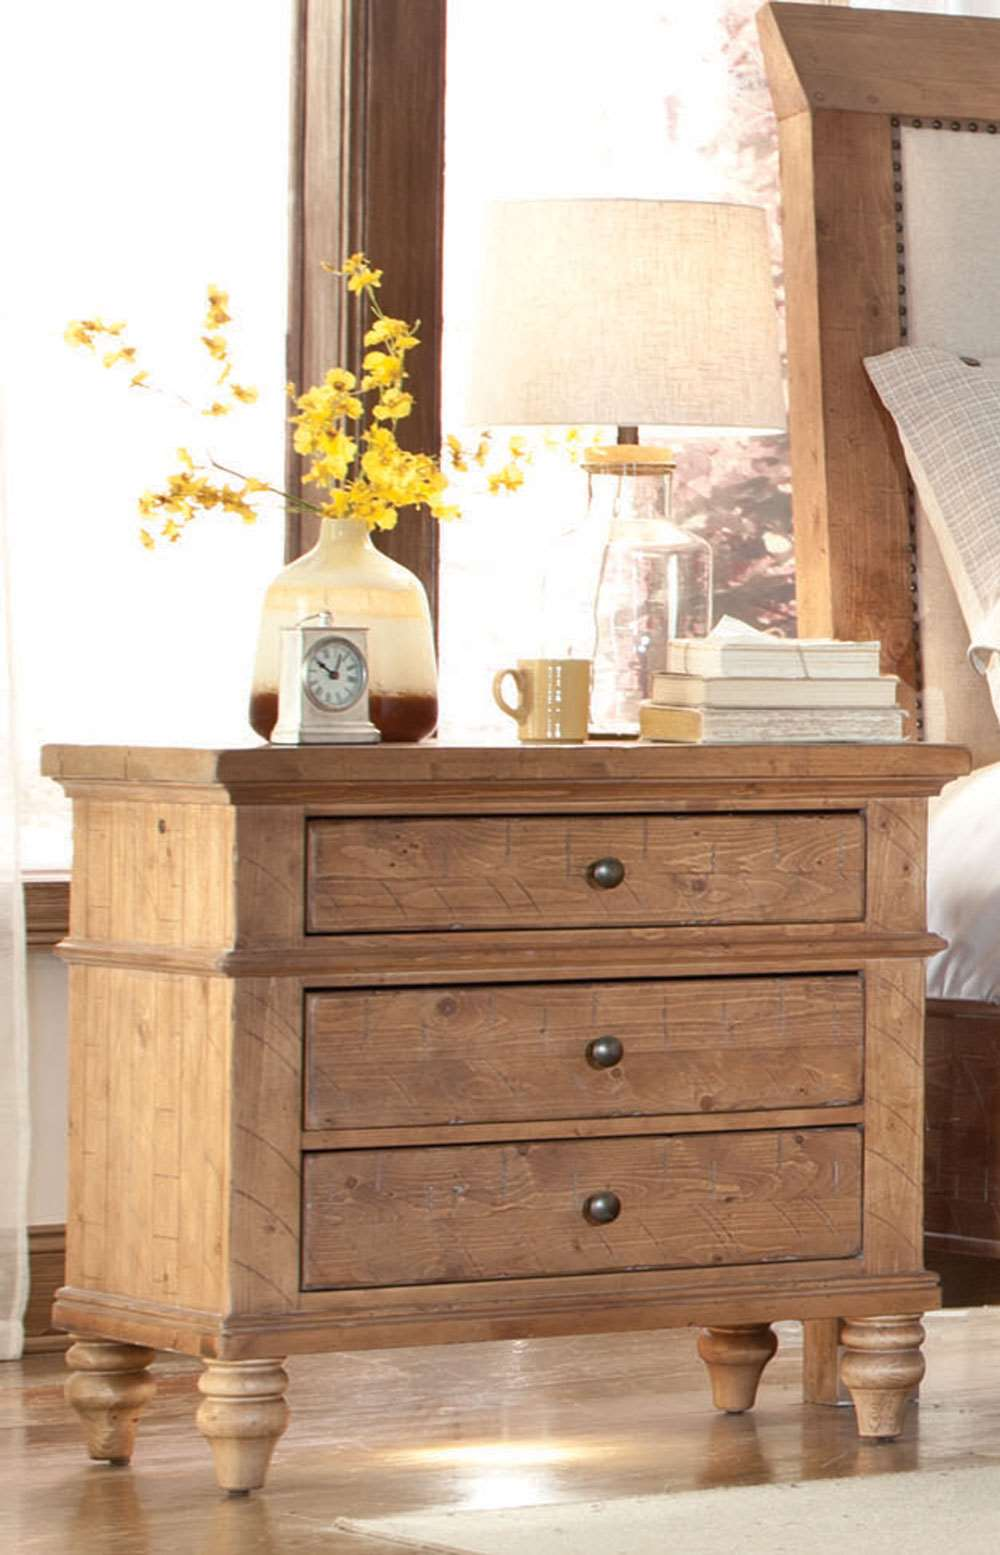 Image of: Aspen bedroom furniture for drawer dresser